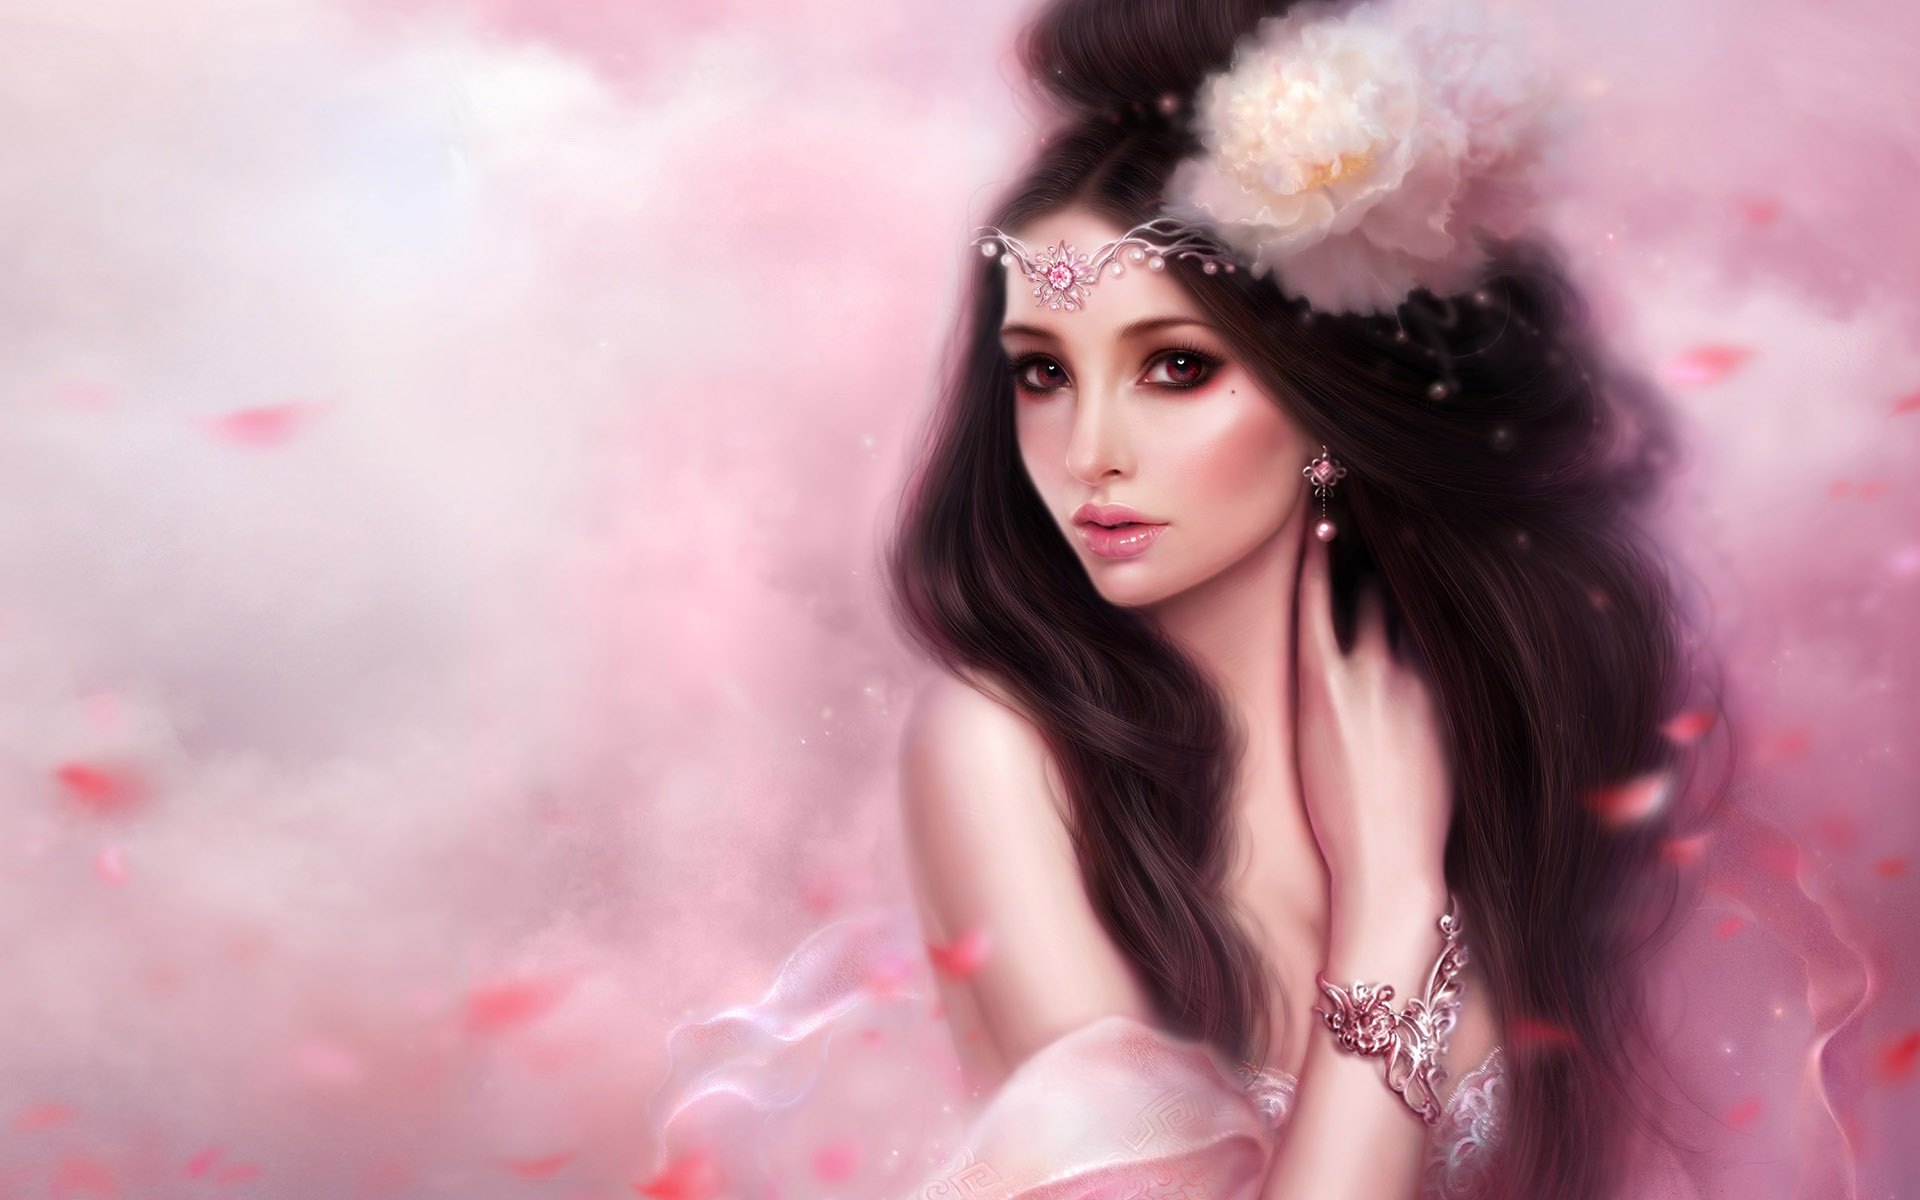 Fantasy girl hd wallpapers movie hd wallpapers - Hd wallpaper for mobile girl ...